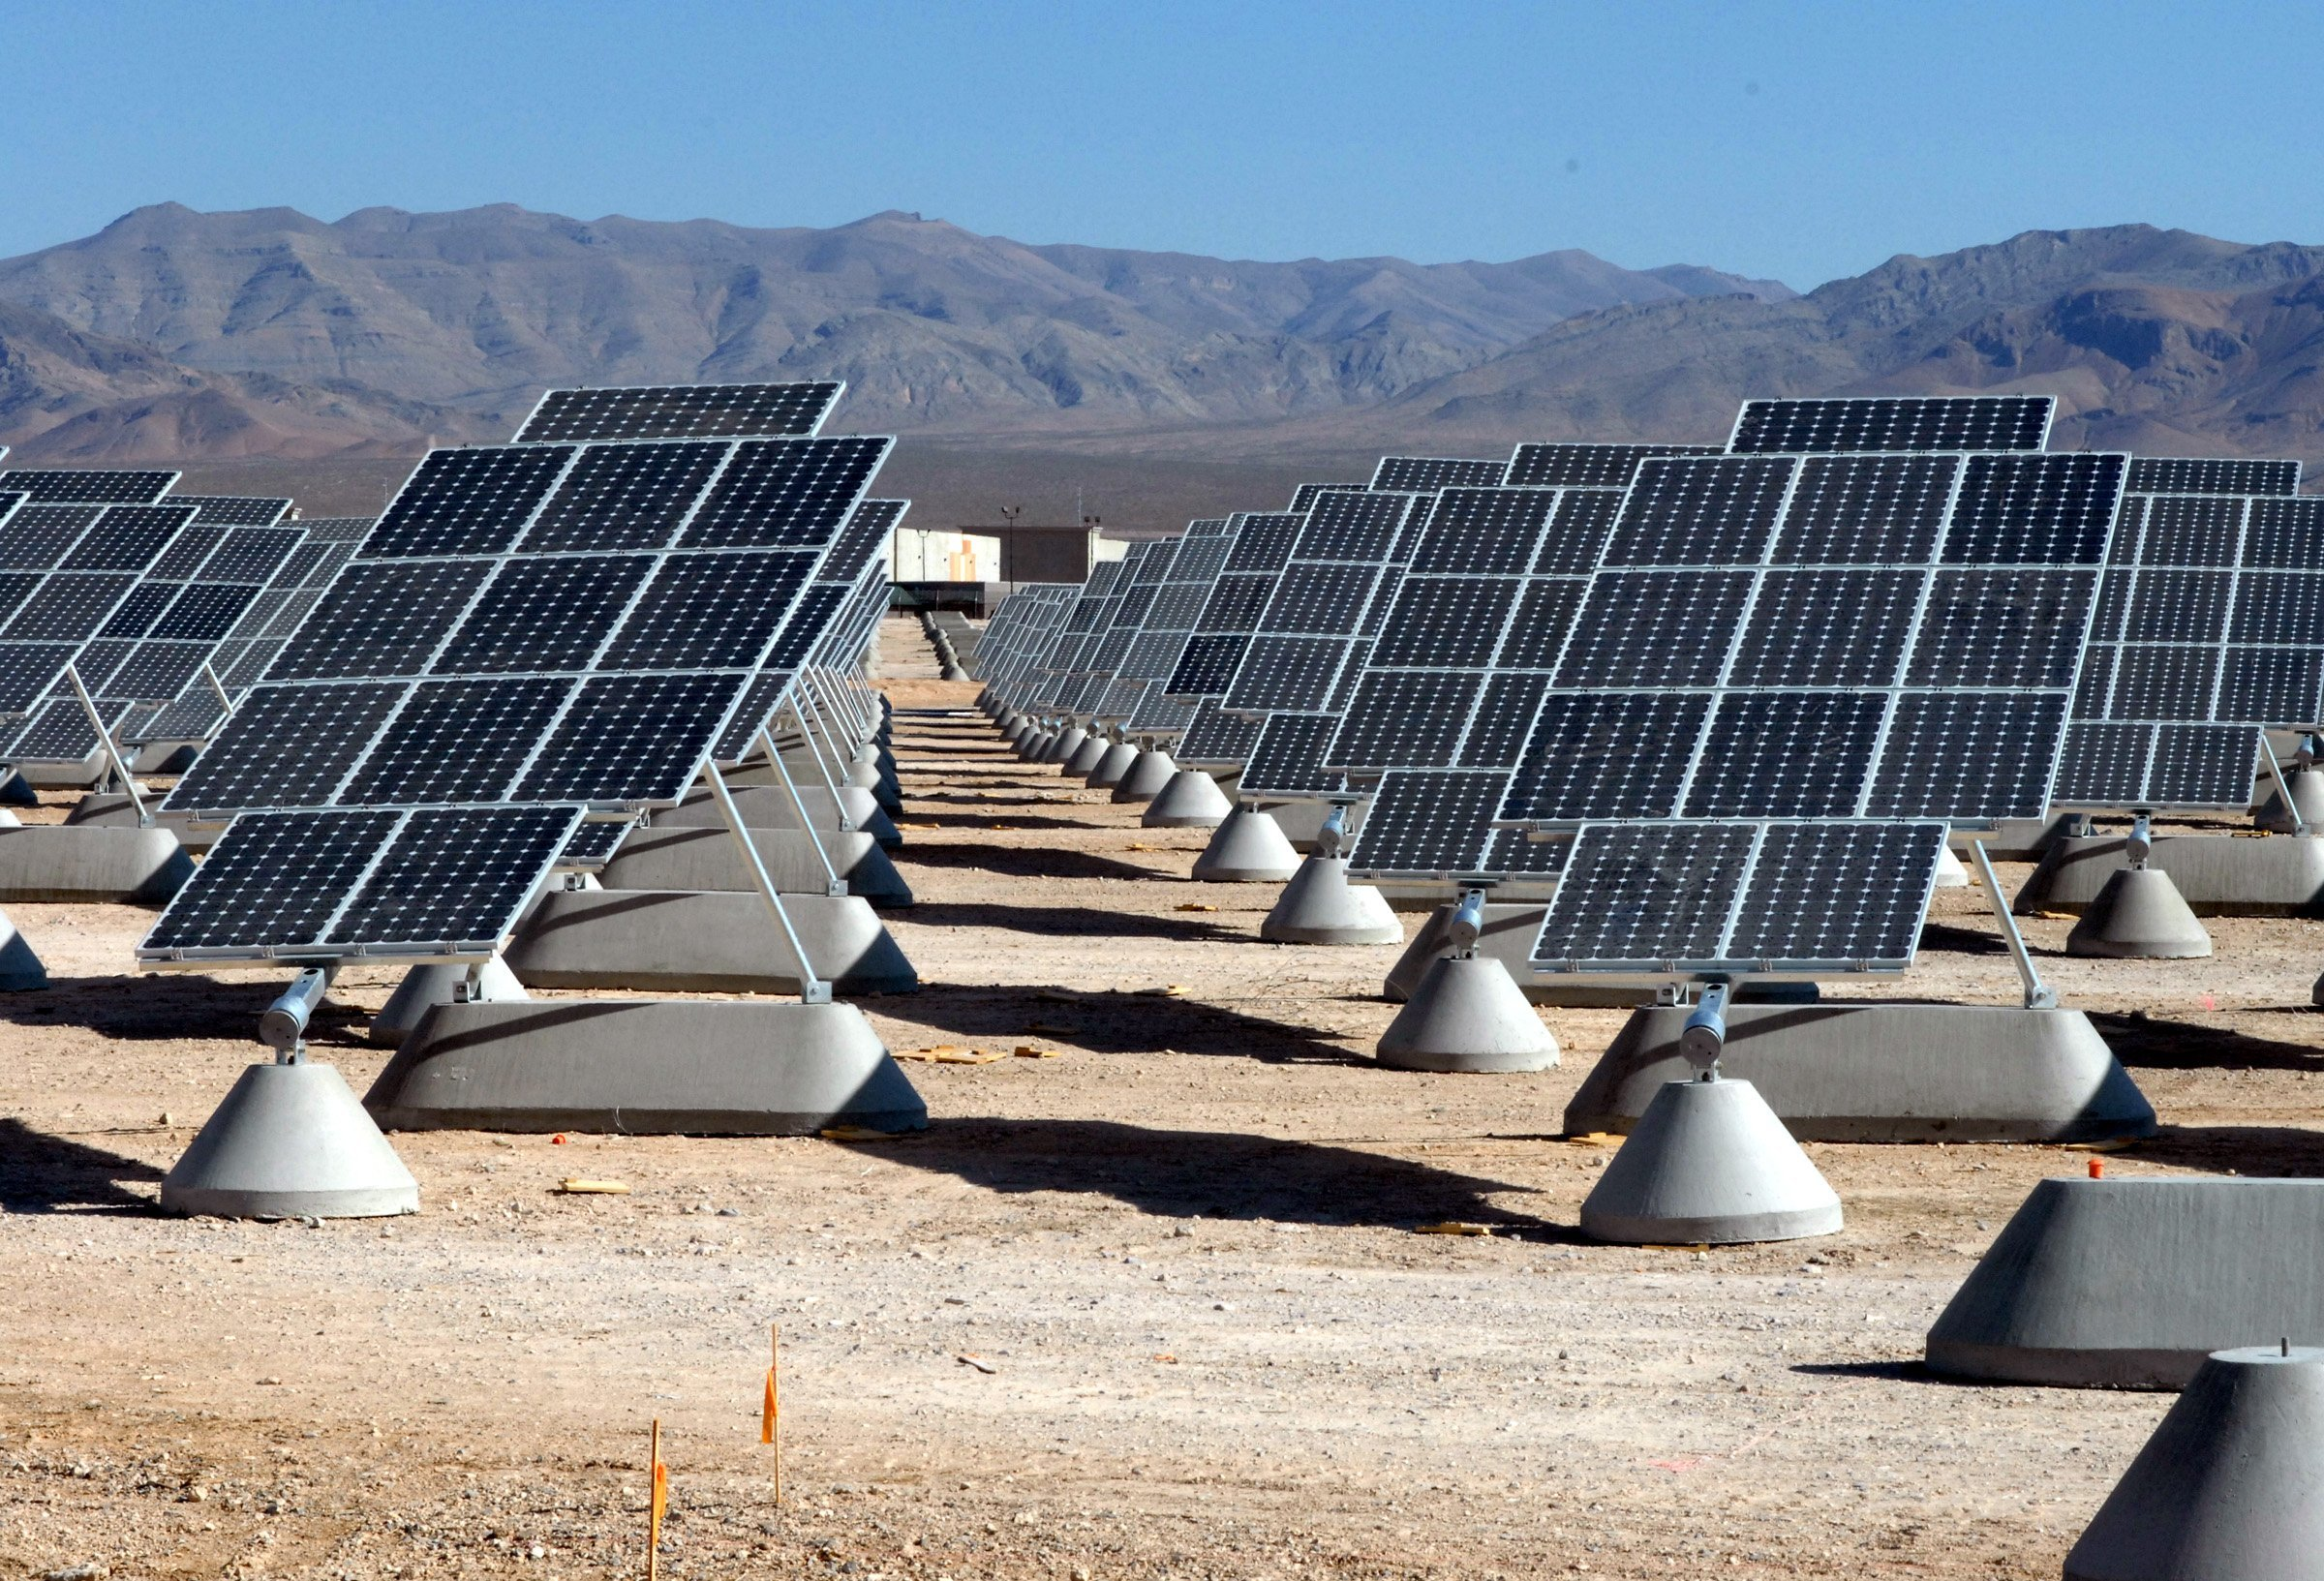 Solar installation at Nellis Air Force Base, USA. Image : Wikimedia Commons